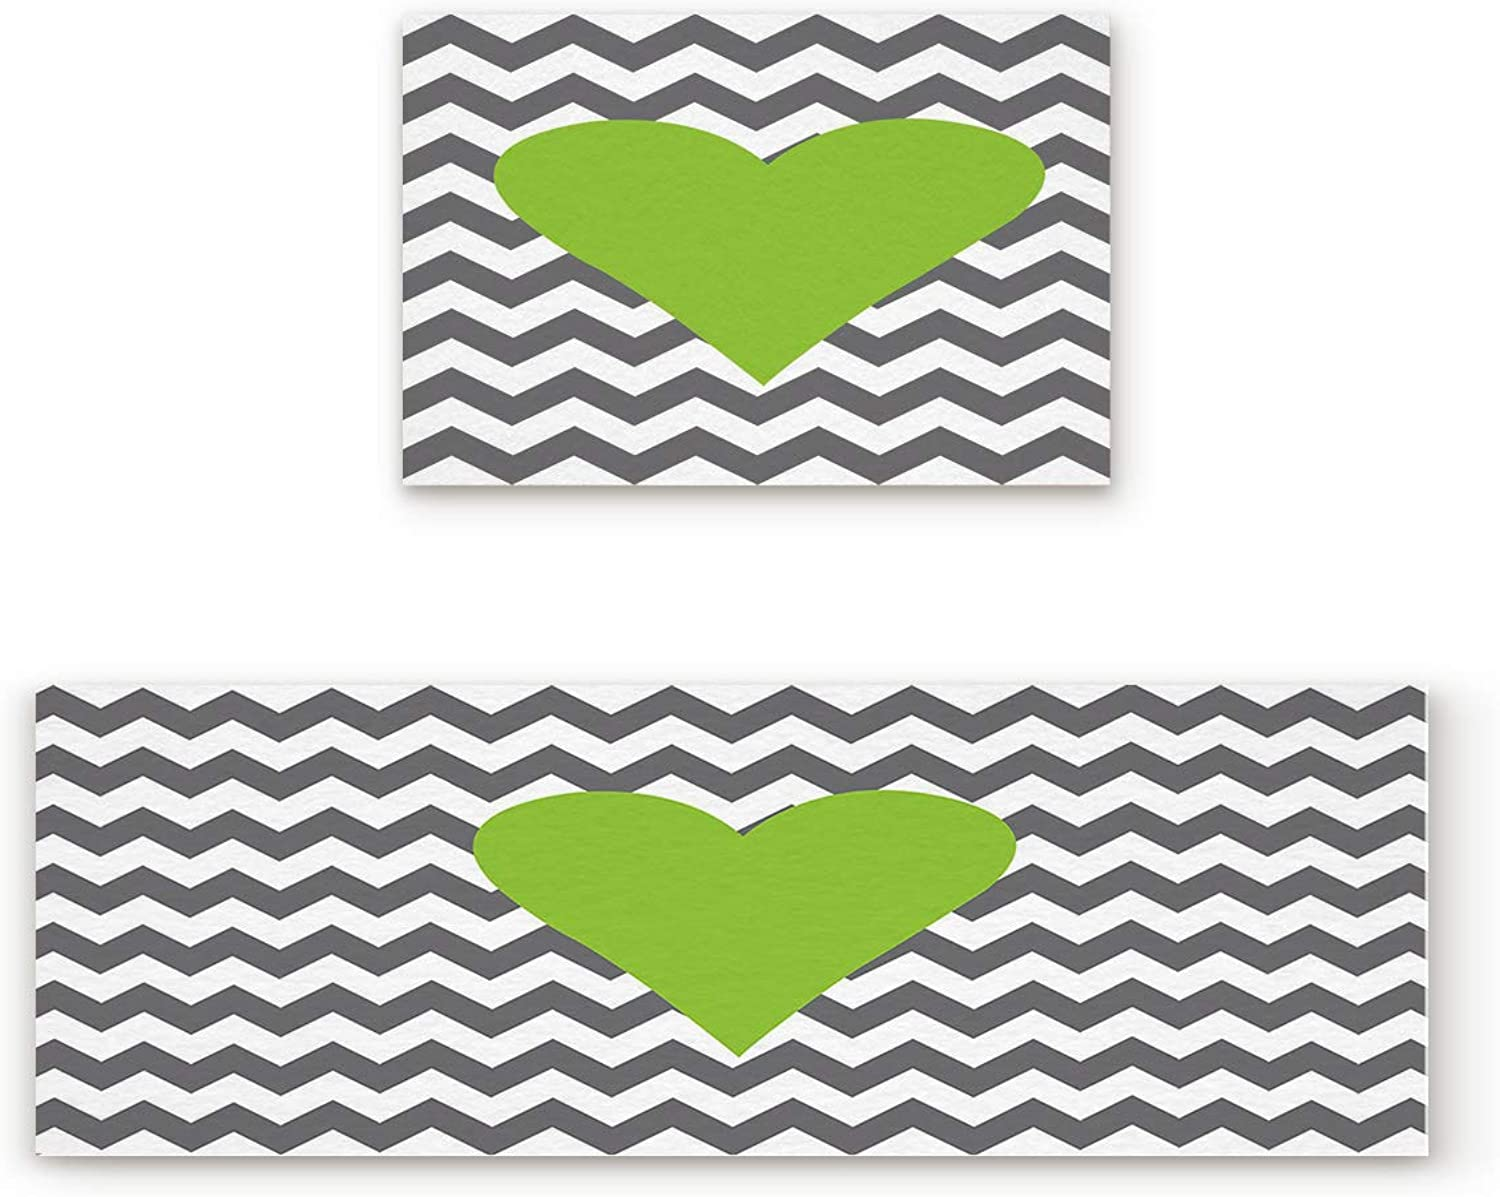 KAROLA 2 Piece Non-Slip Kitchen Mat Doormat Runner Rug Set Thin Low Pile Indoor Area Rugs Heart Symbol Painted on Chevron Romance Valentines Themed Print 19.7 x31.5 +19.7 x47.2